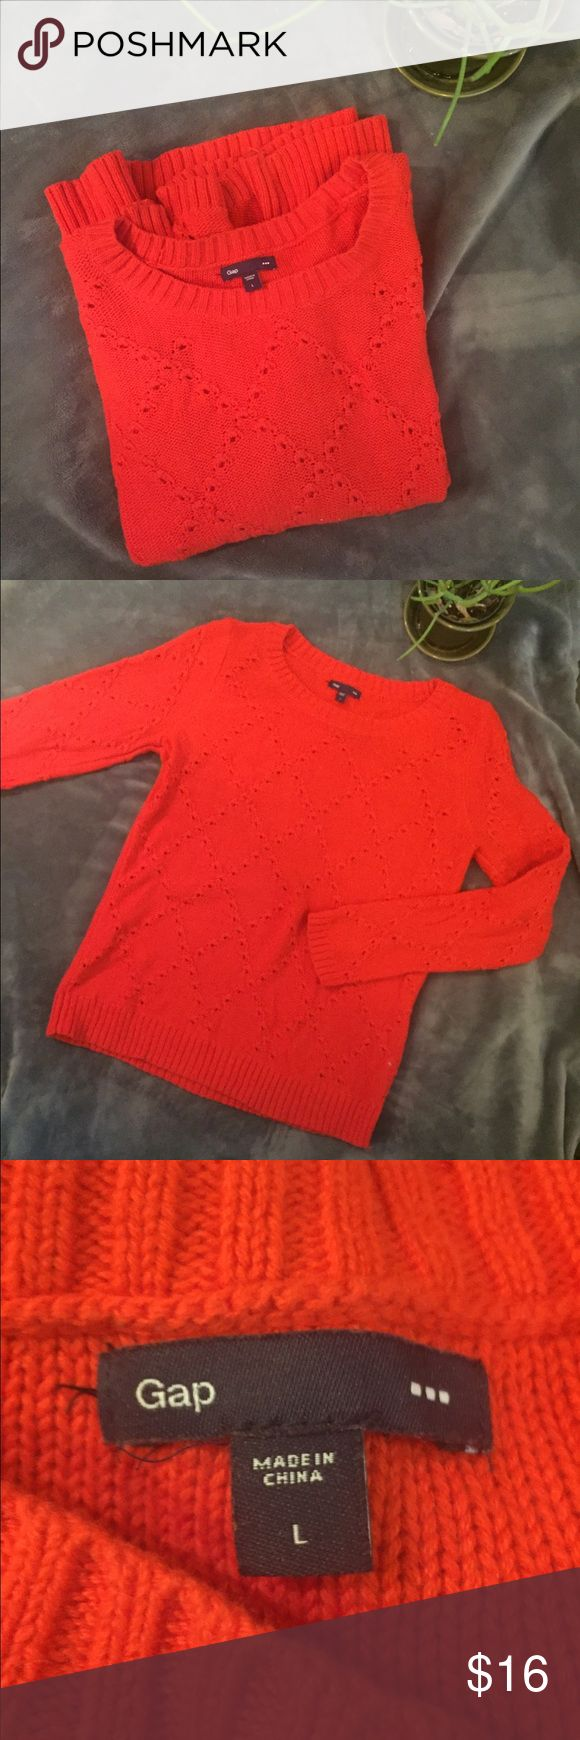 GAP Coral Knit Sweater Lovely Winter staple! One very small pull, pictured, located in patterned front panel. Back of sweater is solid knit with no pattern. Purchased in-store at GAP Factory (outlet). Long sleeves, could be a spacious Small or Medium. 🍊 GAP Sweaters Crew & Scoop Necks